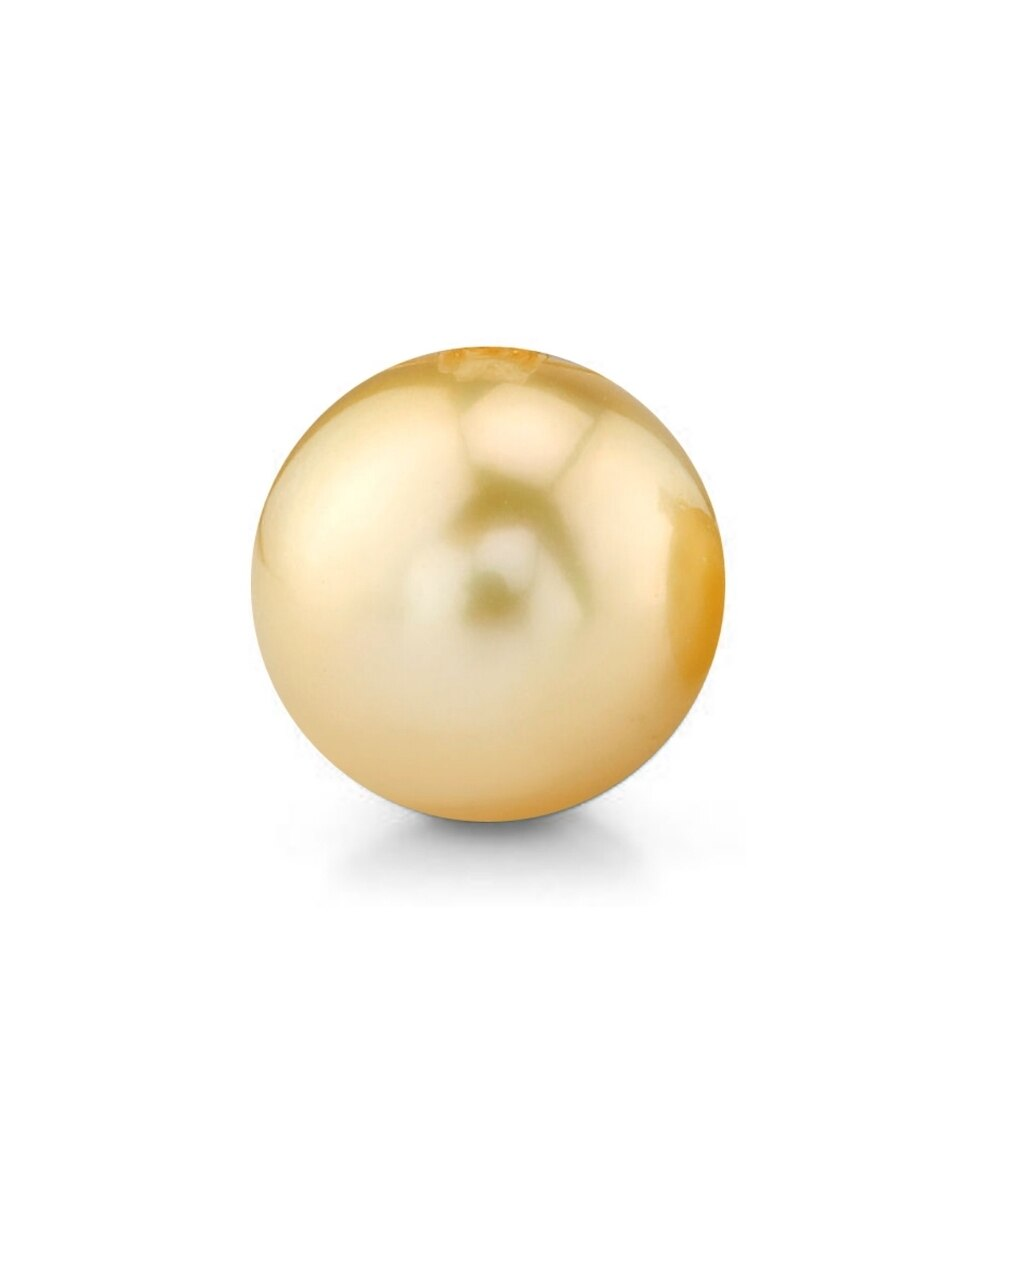 This loose Gold South Sea pearl is 10.0mm in size